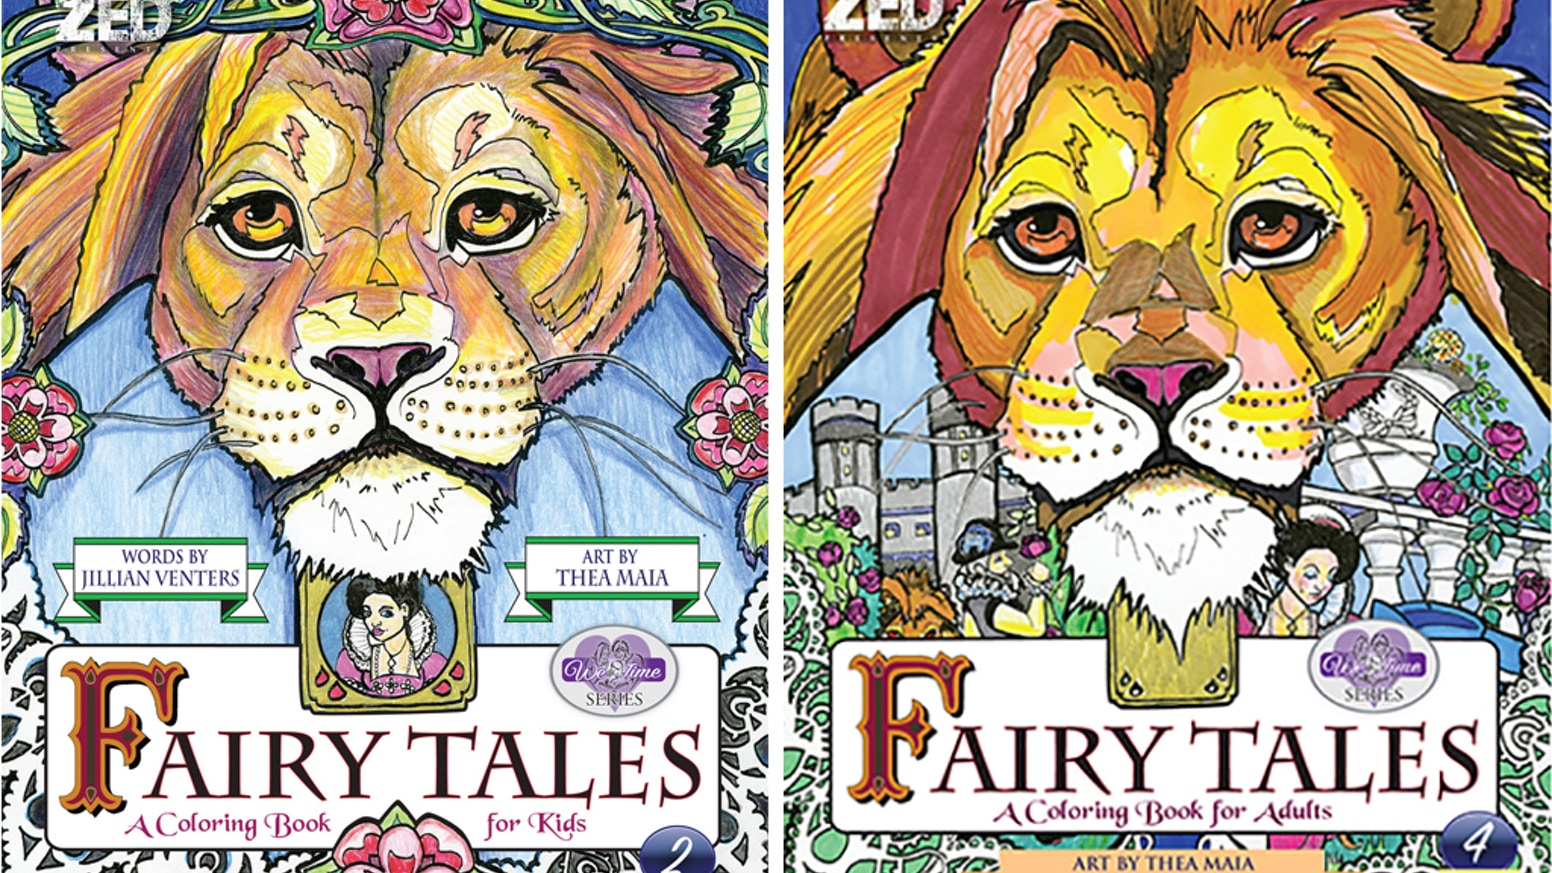 Twin coloring books with different levels of detailed illustrations and stories for adult and child. You no longer have to share yours!